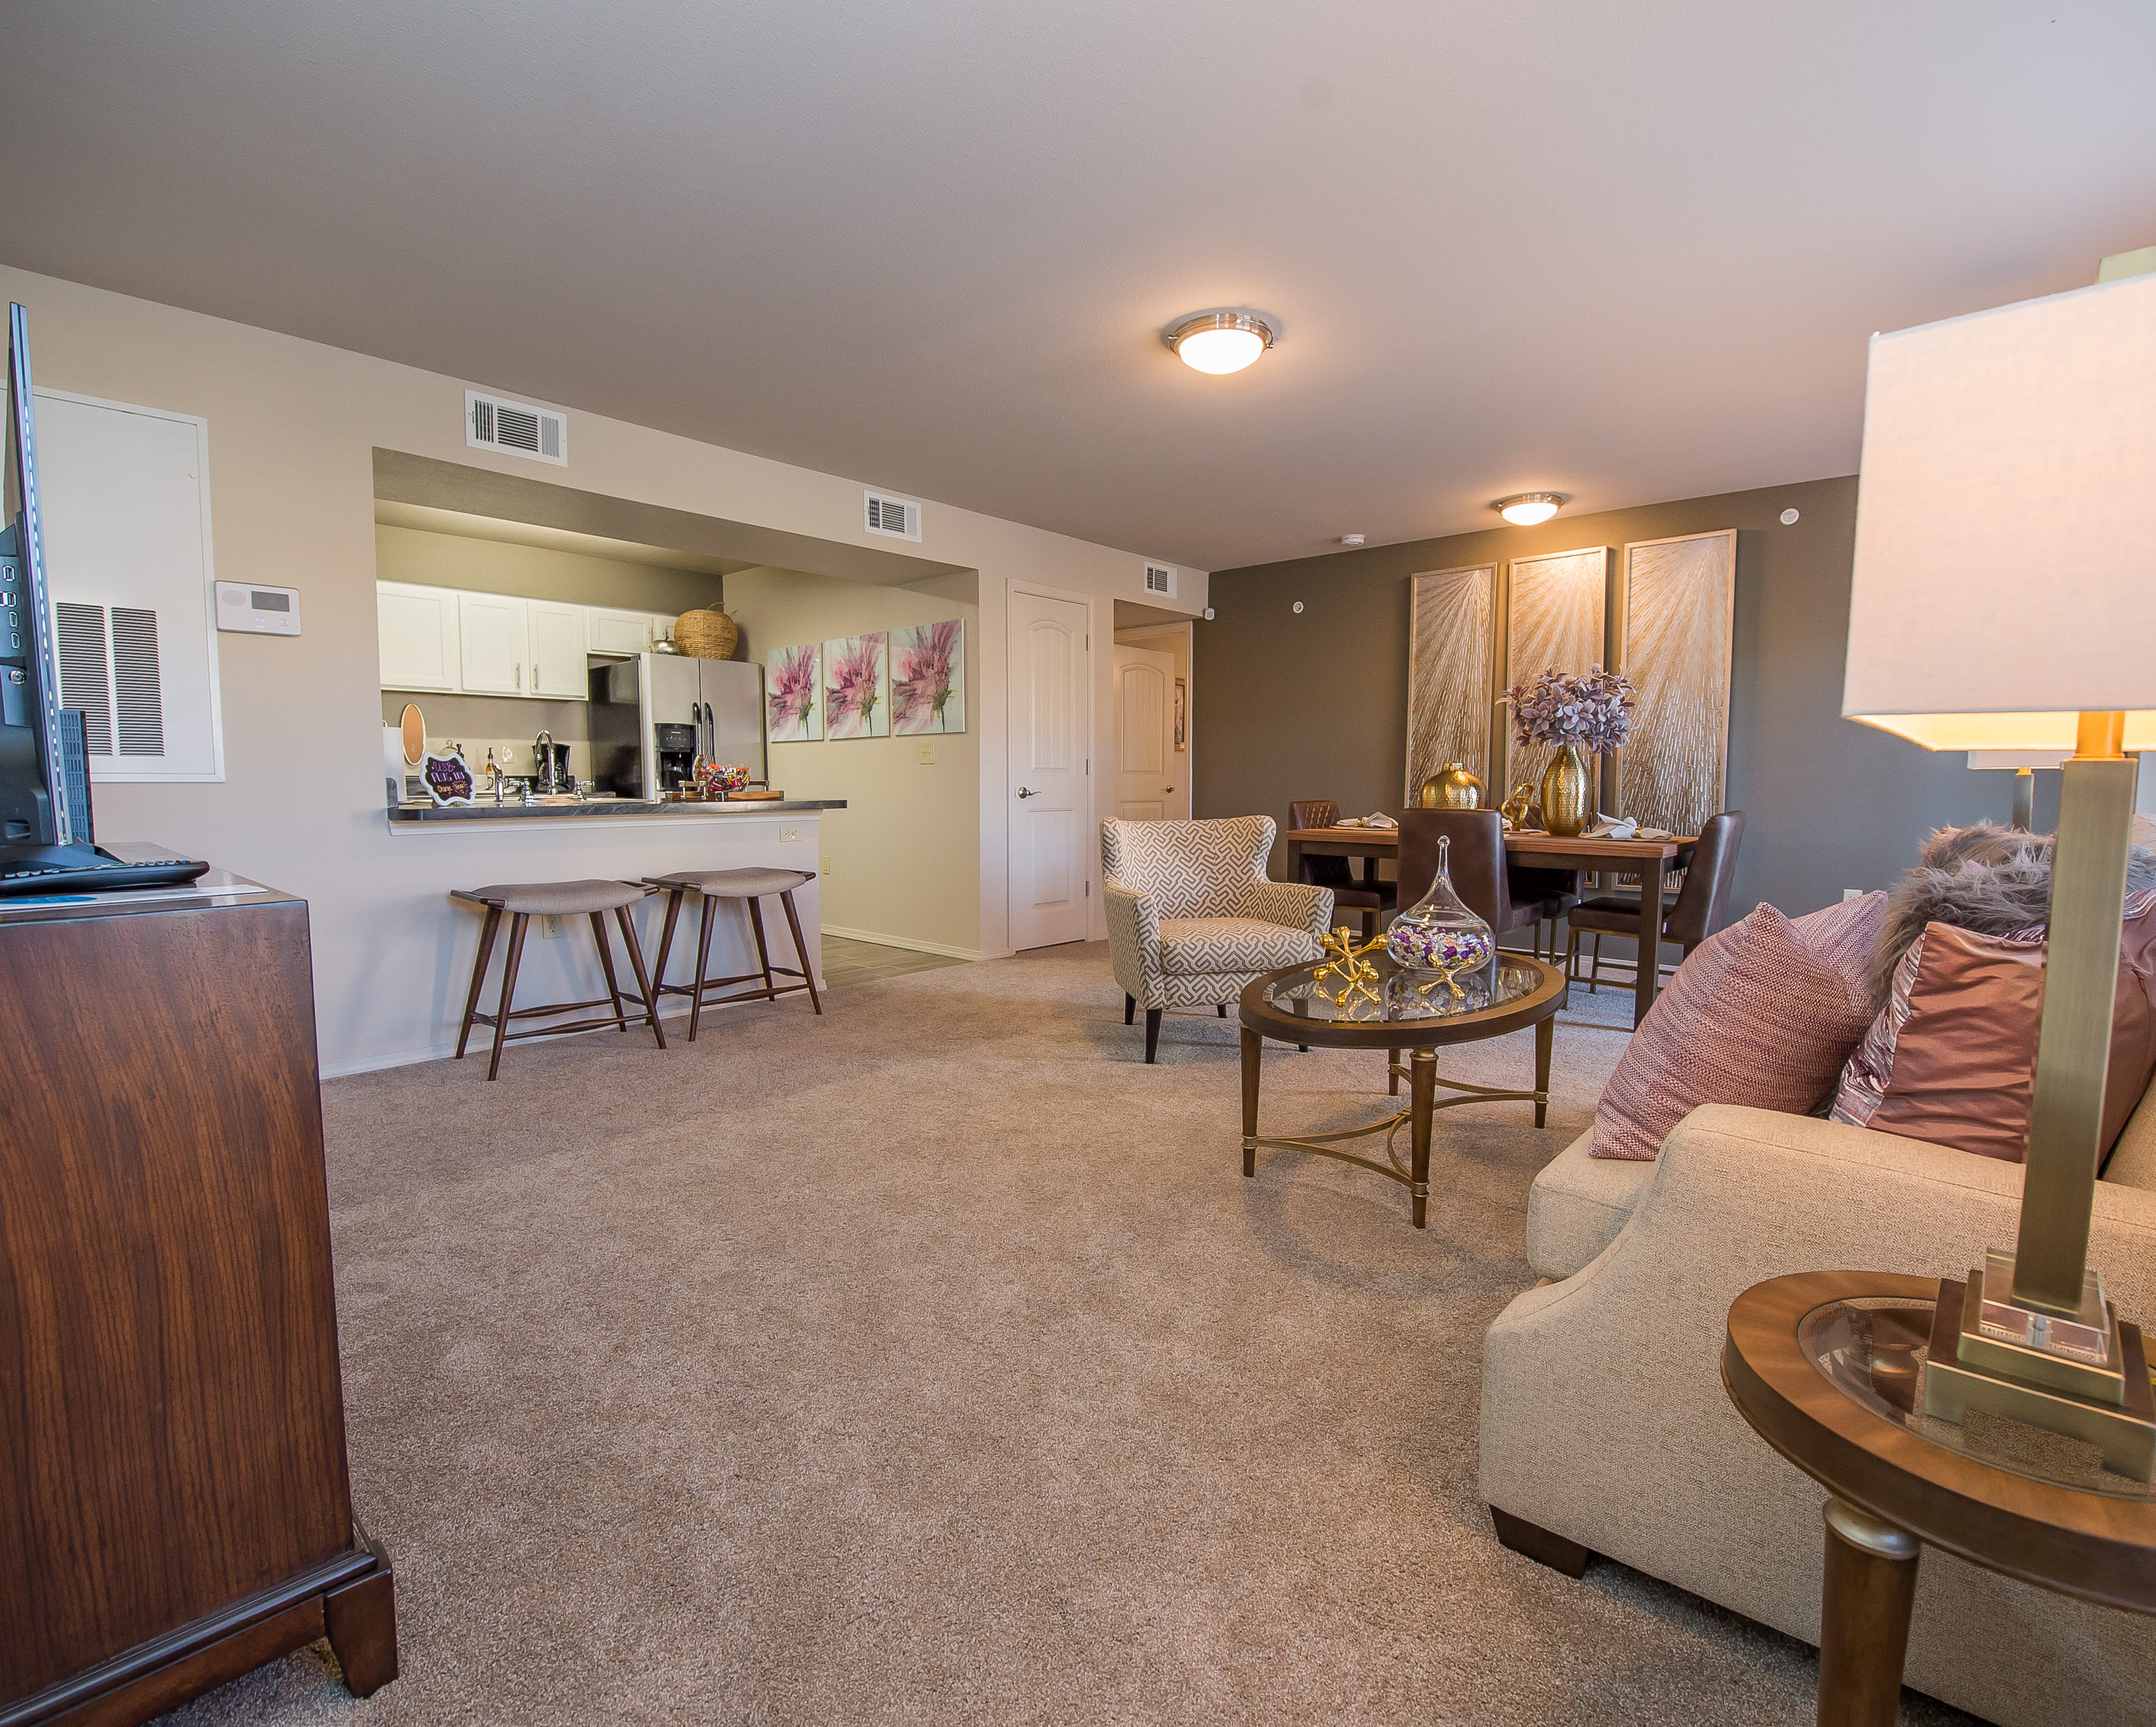 Our apartments in Temple, Texas showcase a beautiful living room